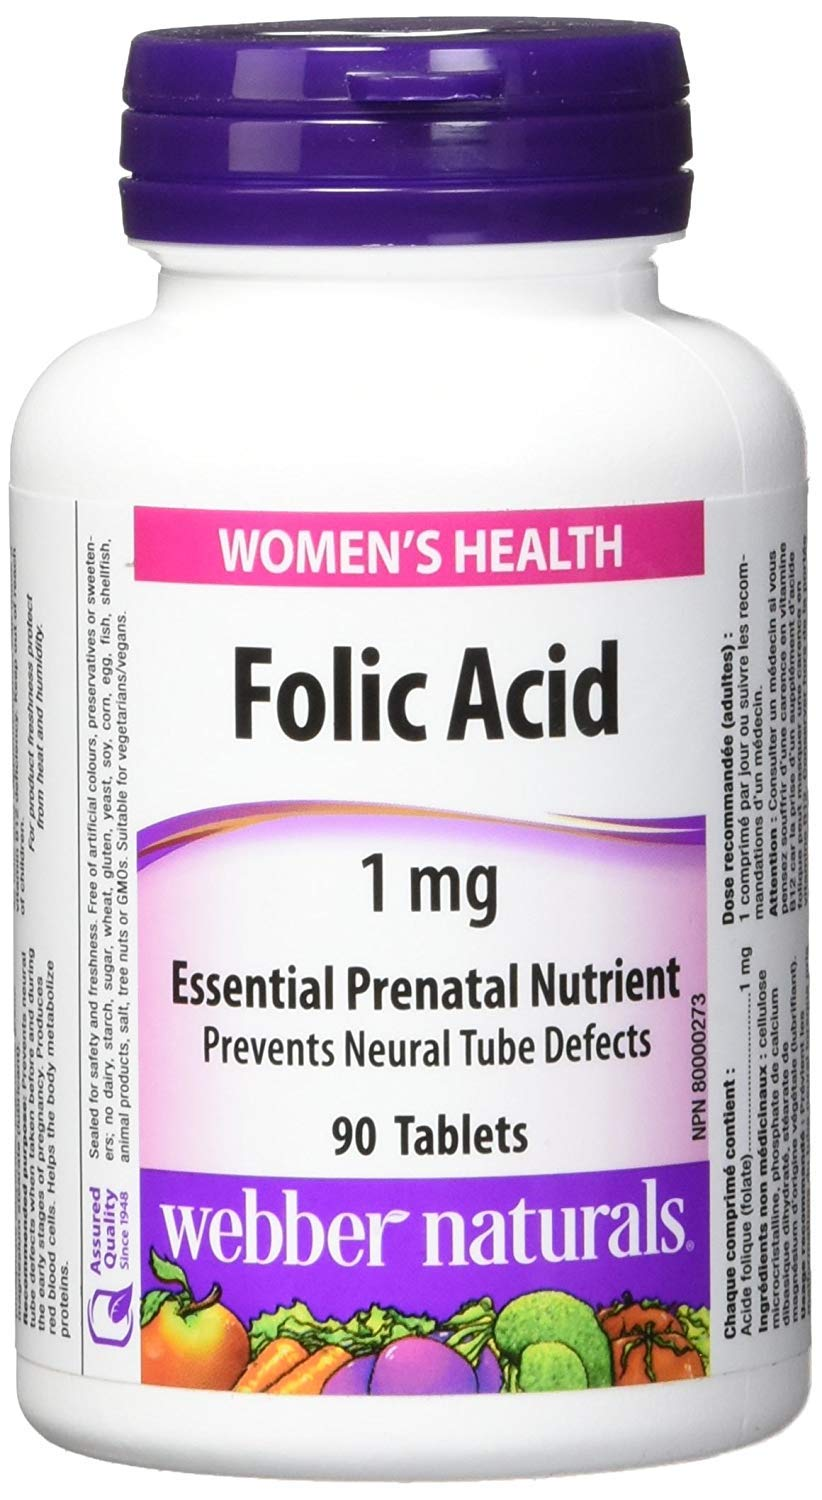 WEBBER NATURALS Folic Acid 1mg 90 Tablets